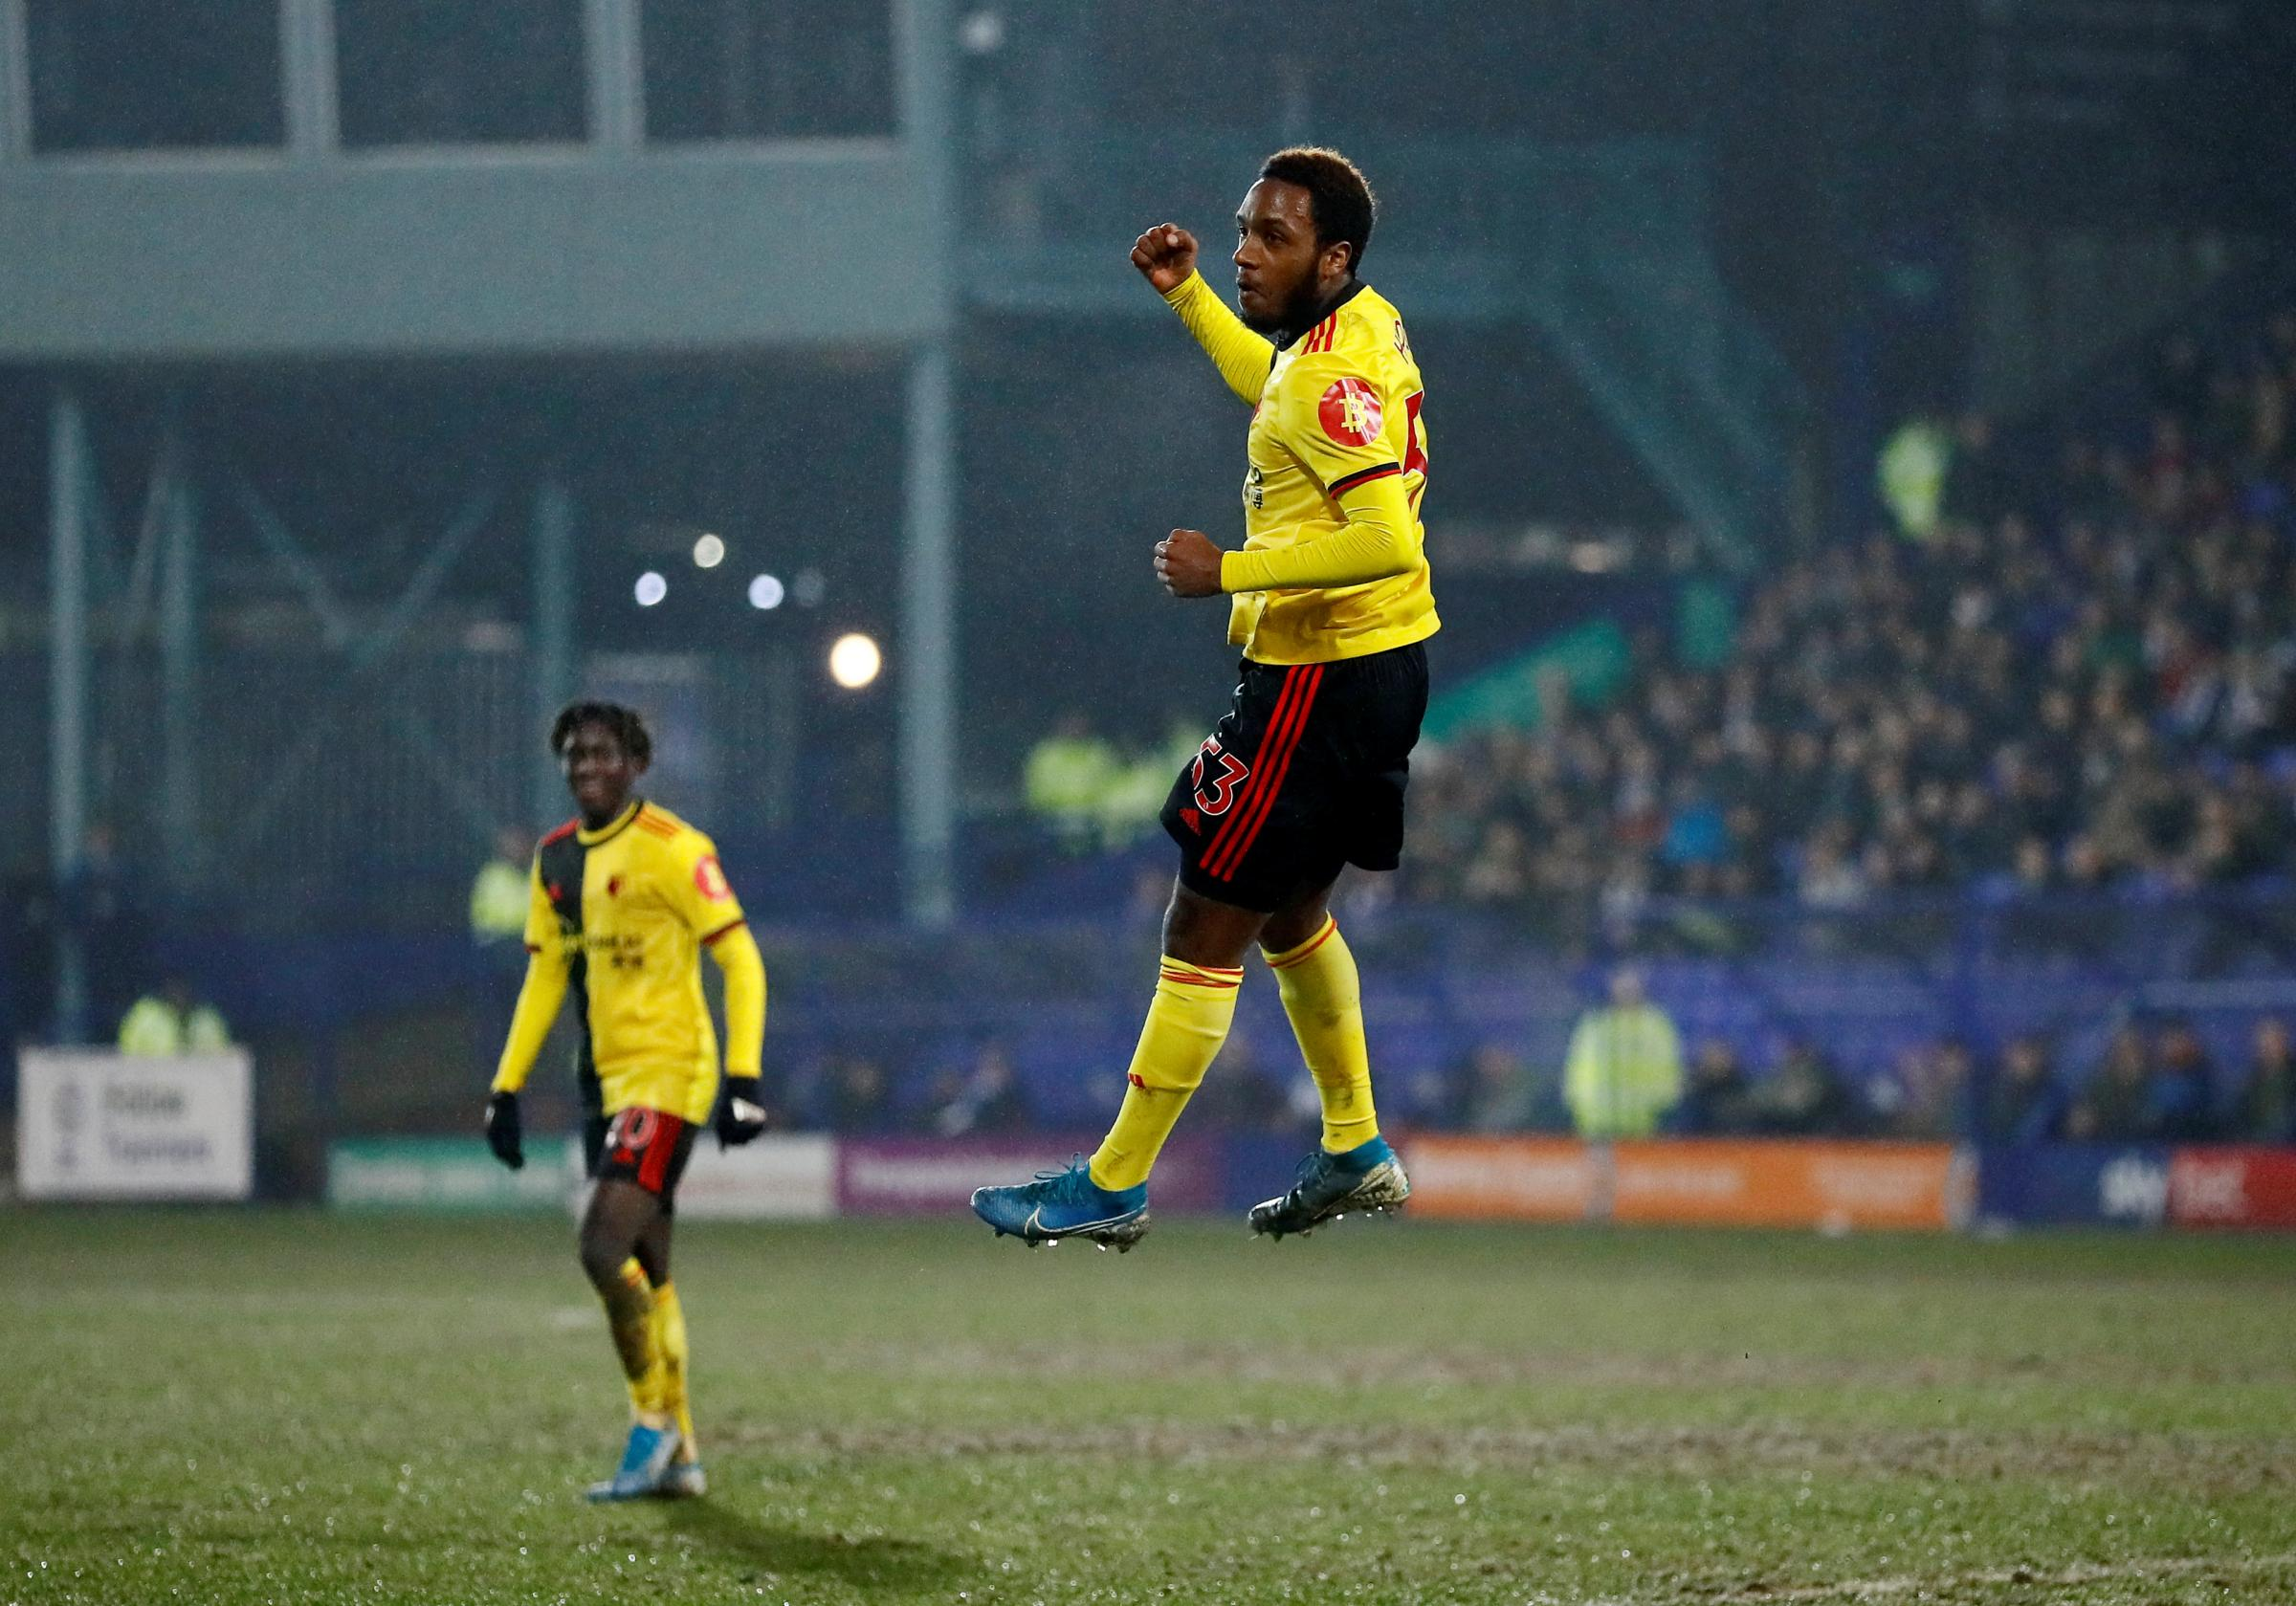 Kaylen Hinds was proud to score on his Watford debut against Tranmere Rovers